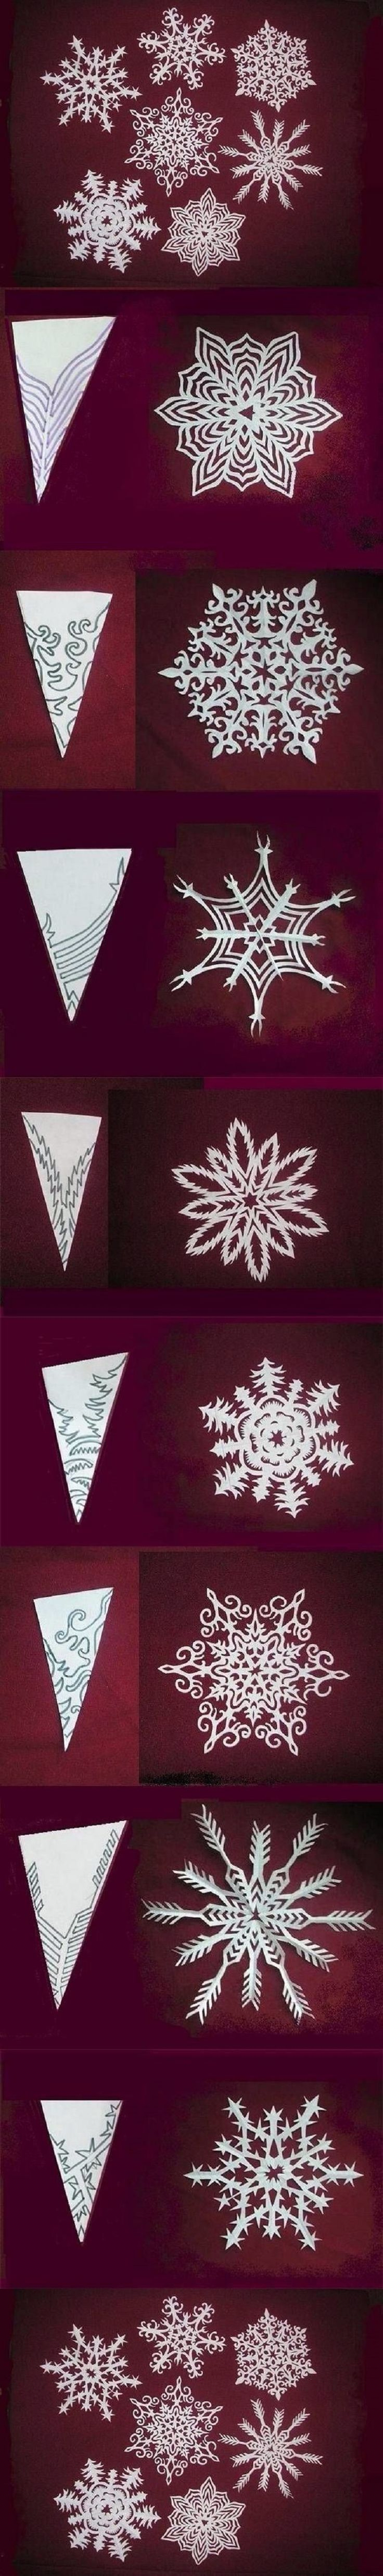 DIY Paper Snowflakes. #handmade #winter #craft